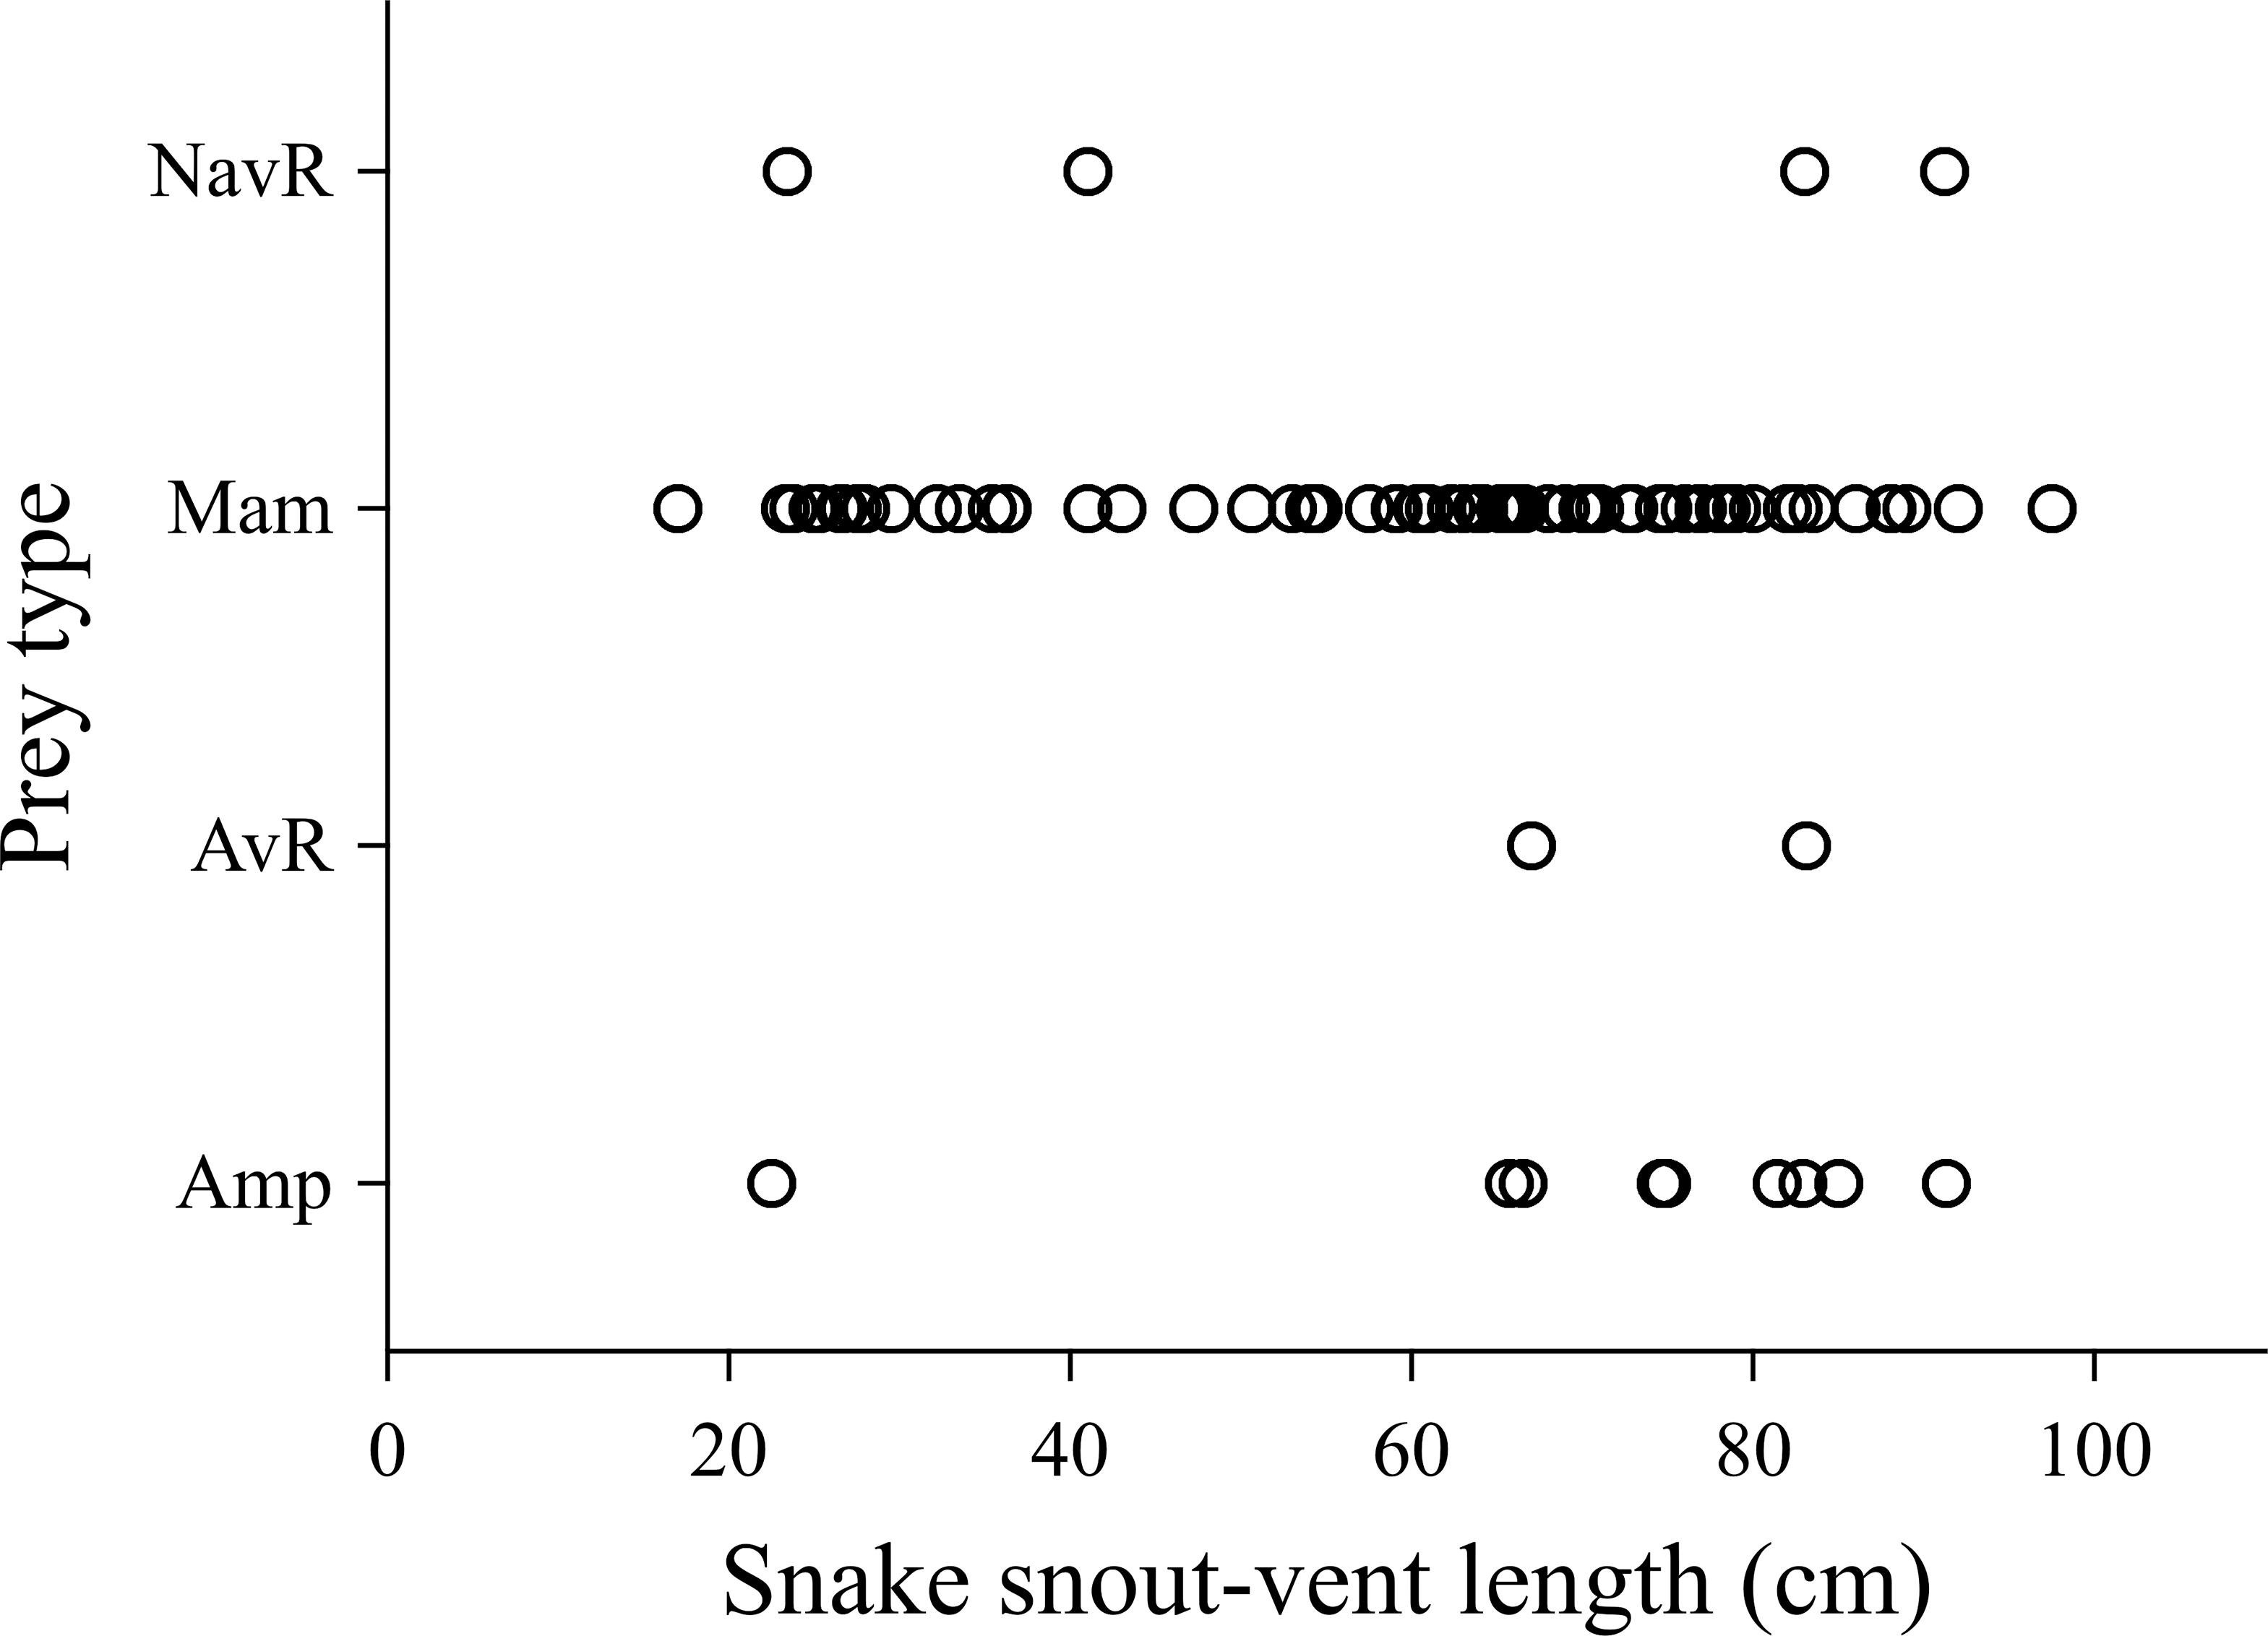 Museum Specimens Bias Measures of Snake Diet: A Case Study Using the